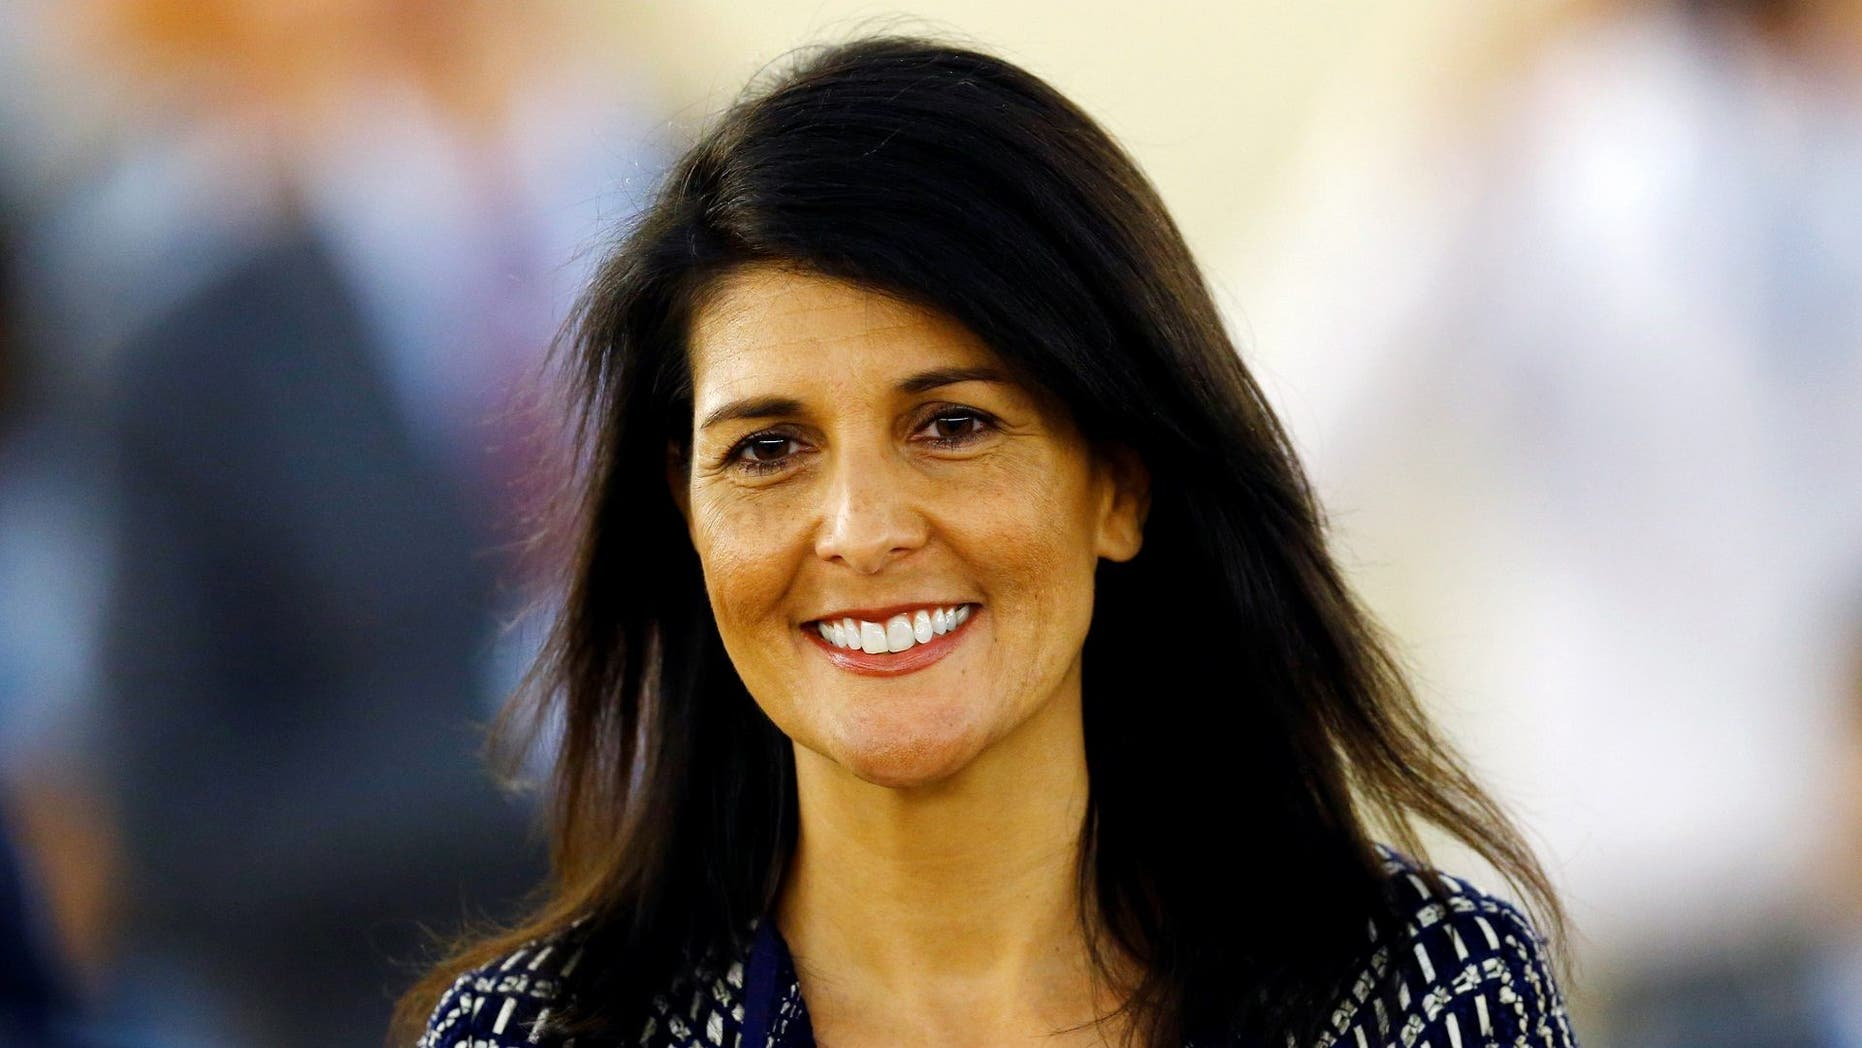 U.S. Ambassador to the United Nations Nikki Haley has reportedly resigned.